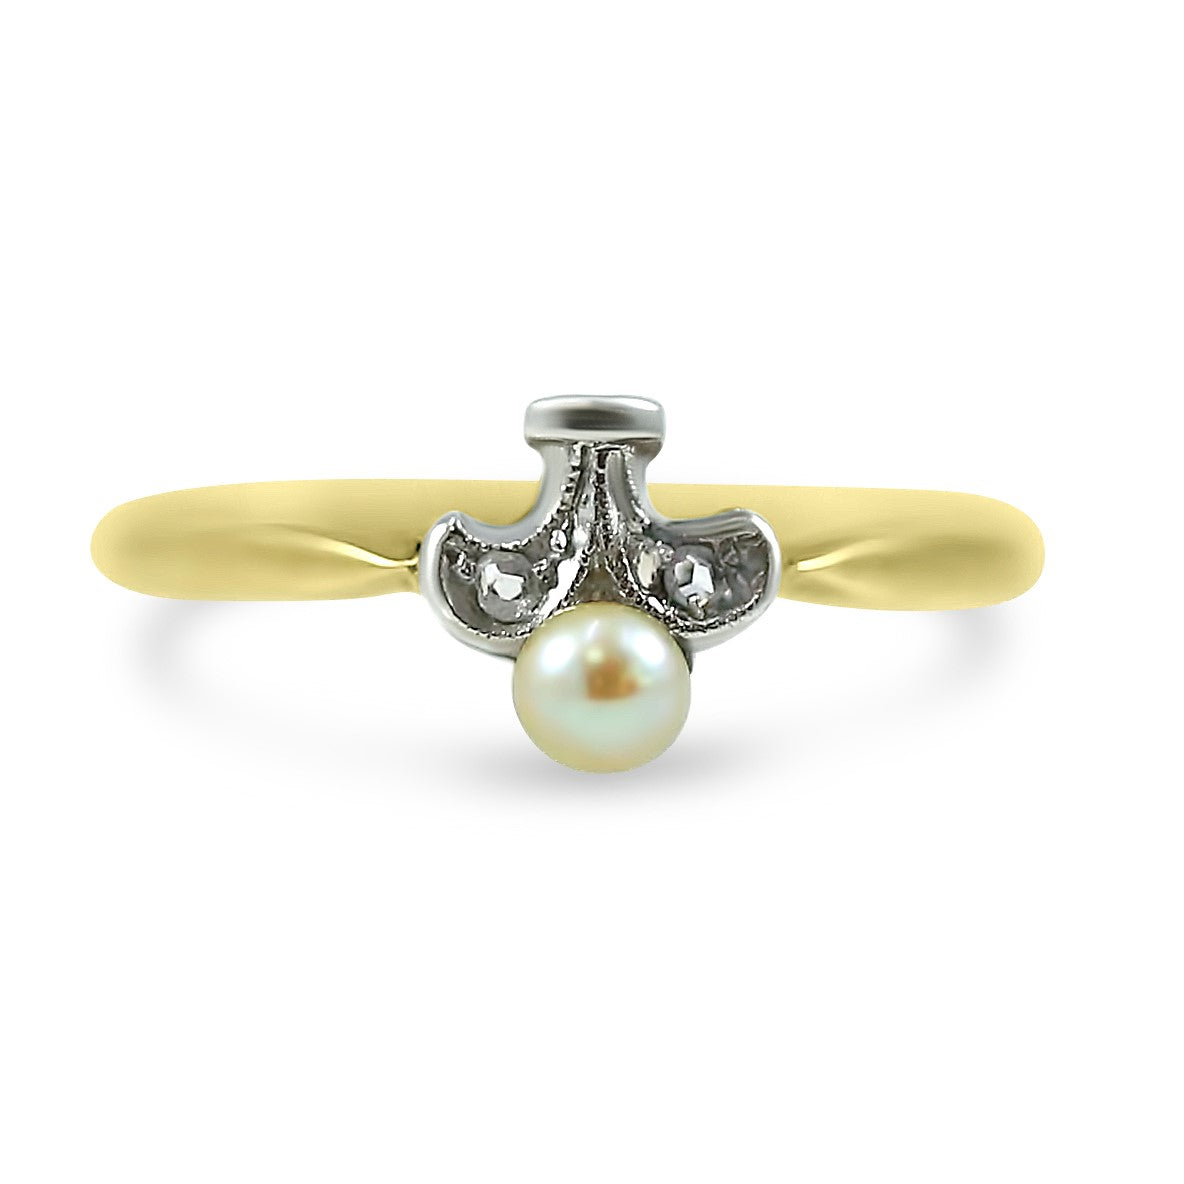 18k yellow gold pearl and diamond estate right hand ring under $200